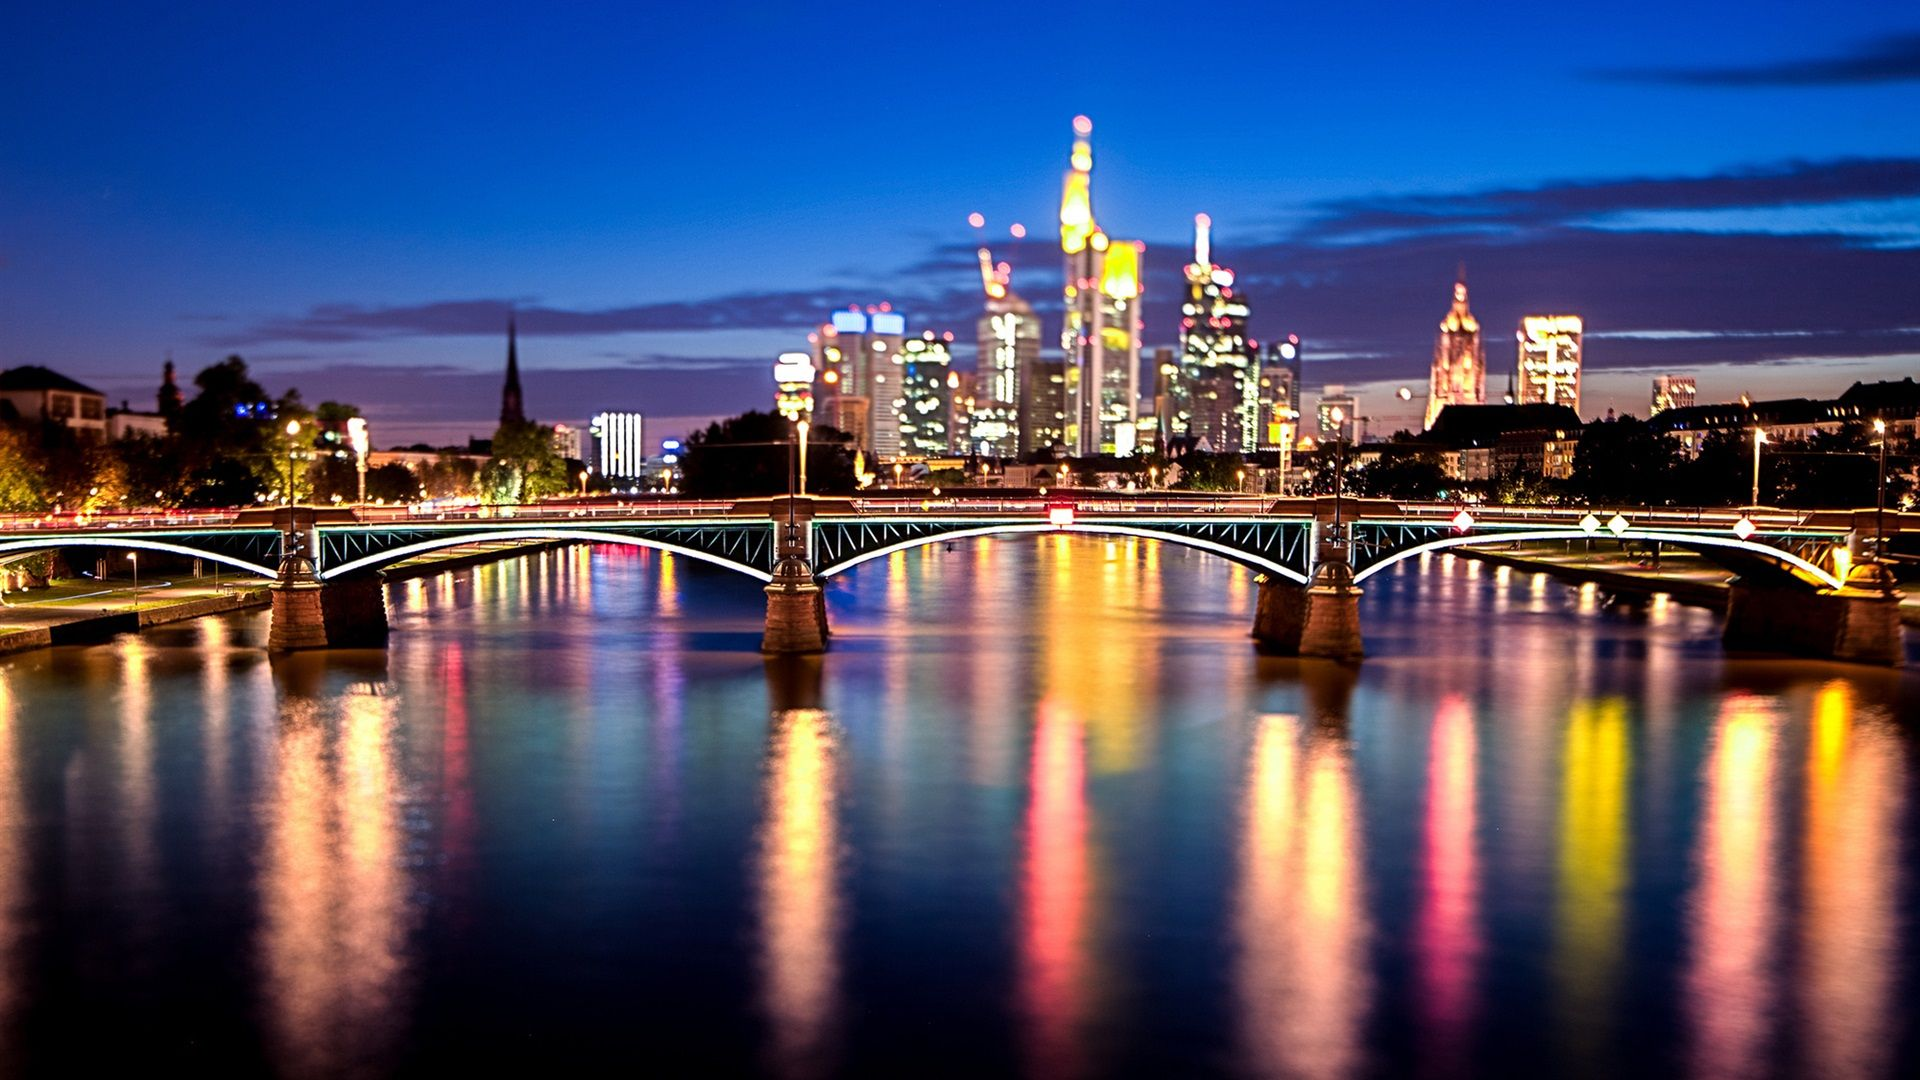 germany-city-at-night-wallpaper-2-compressor